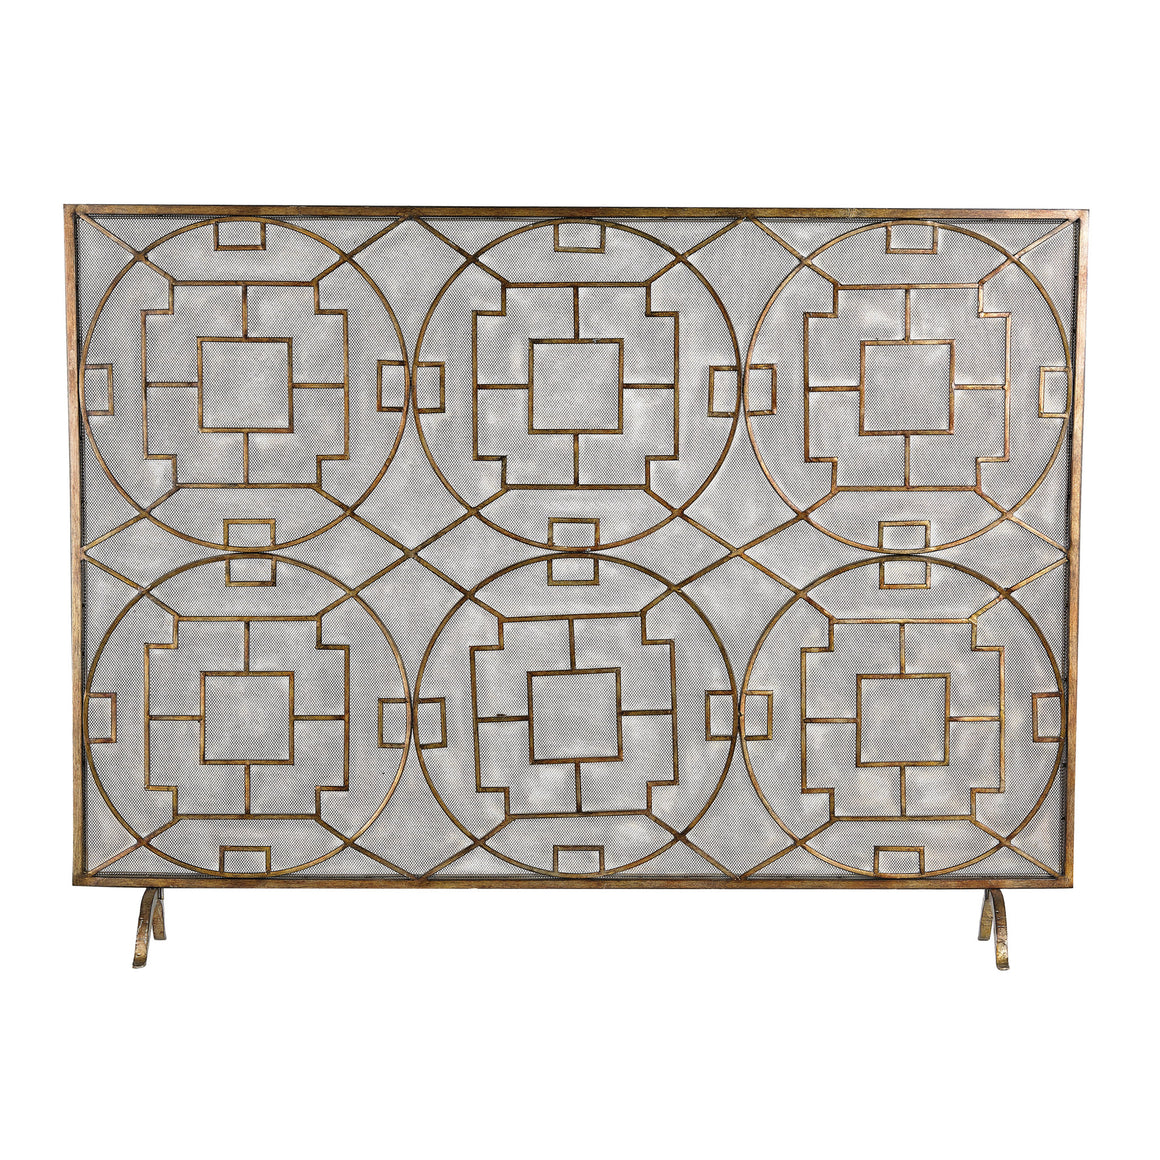 Geometric Firescreen by Sterling